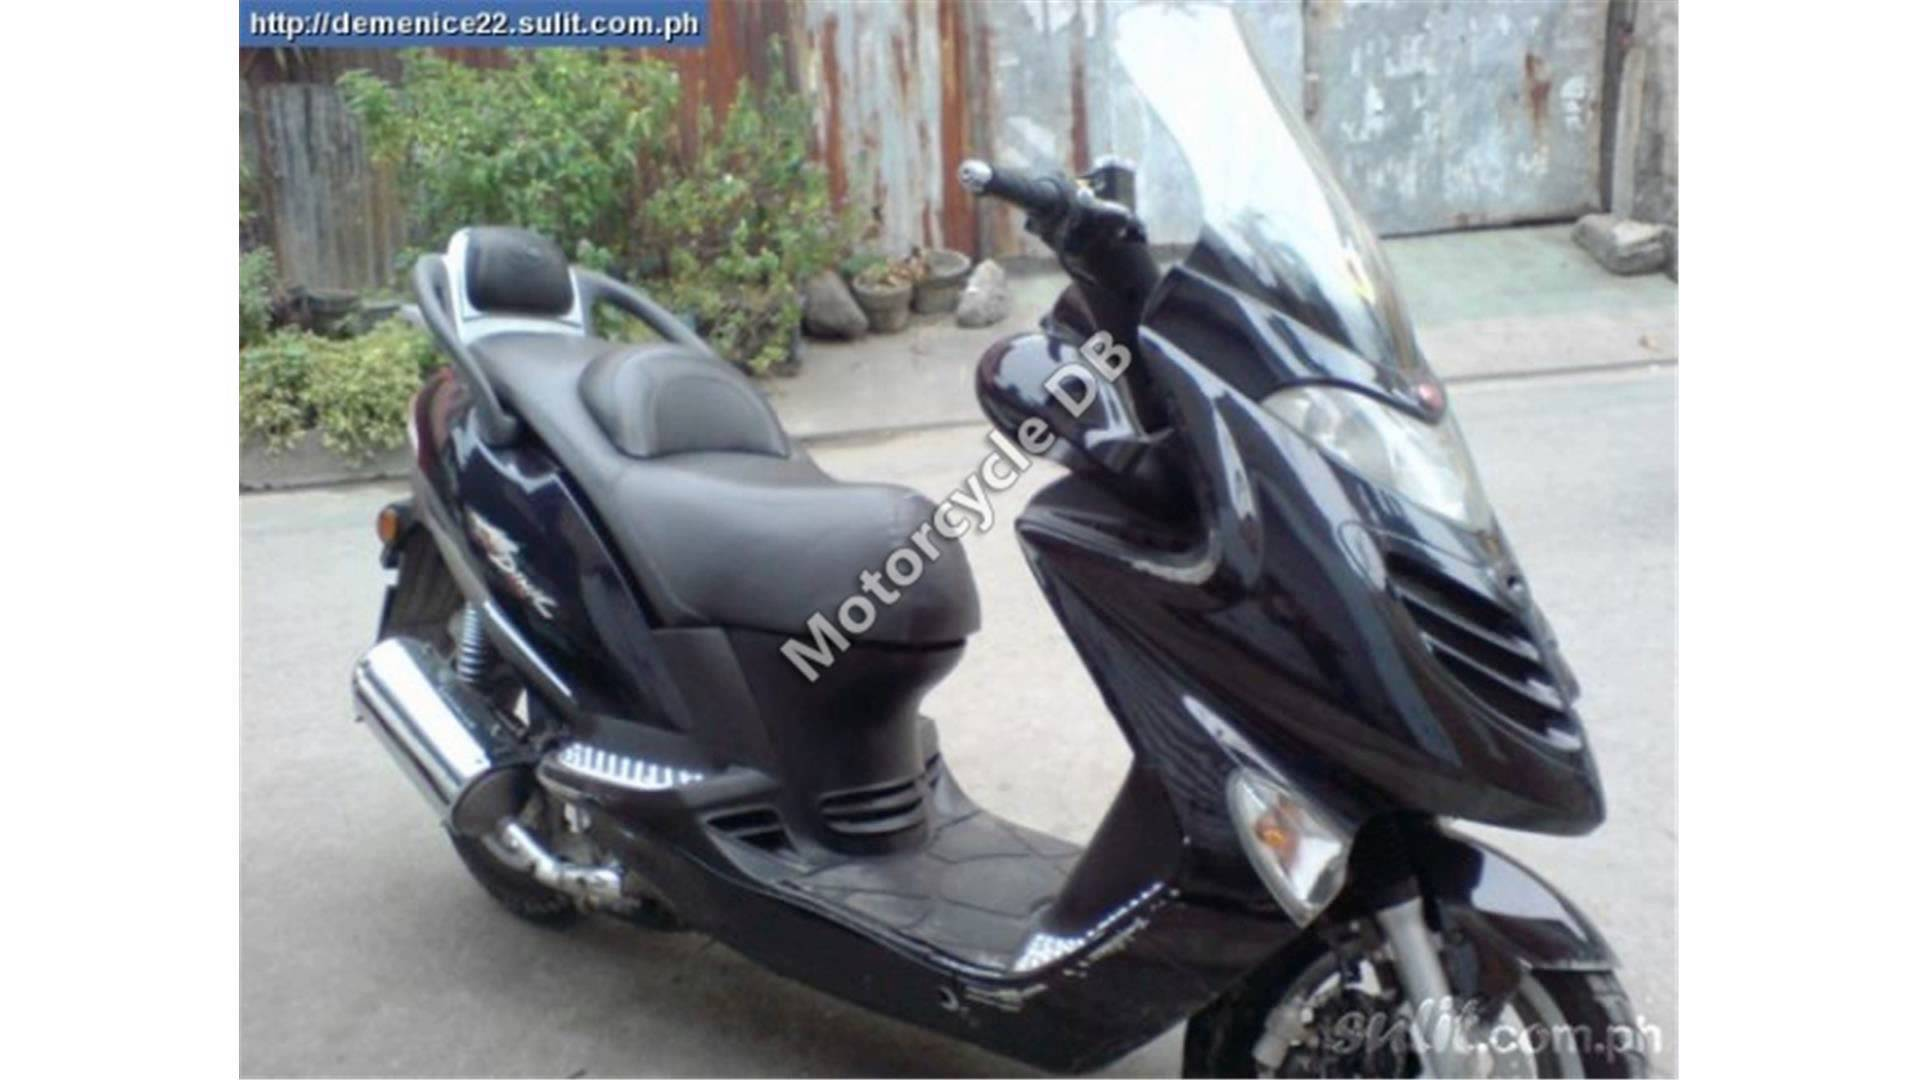 Kymco Grand Dink S 125 images #102191